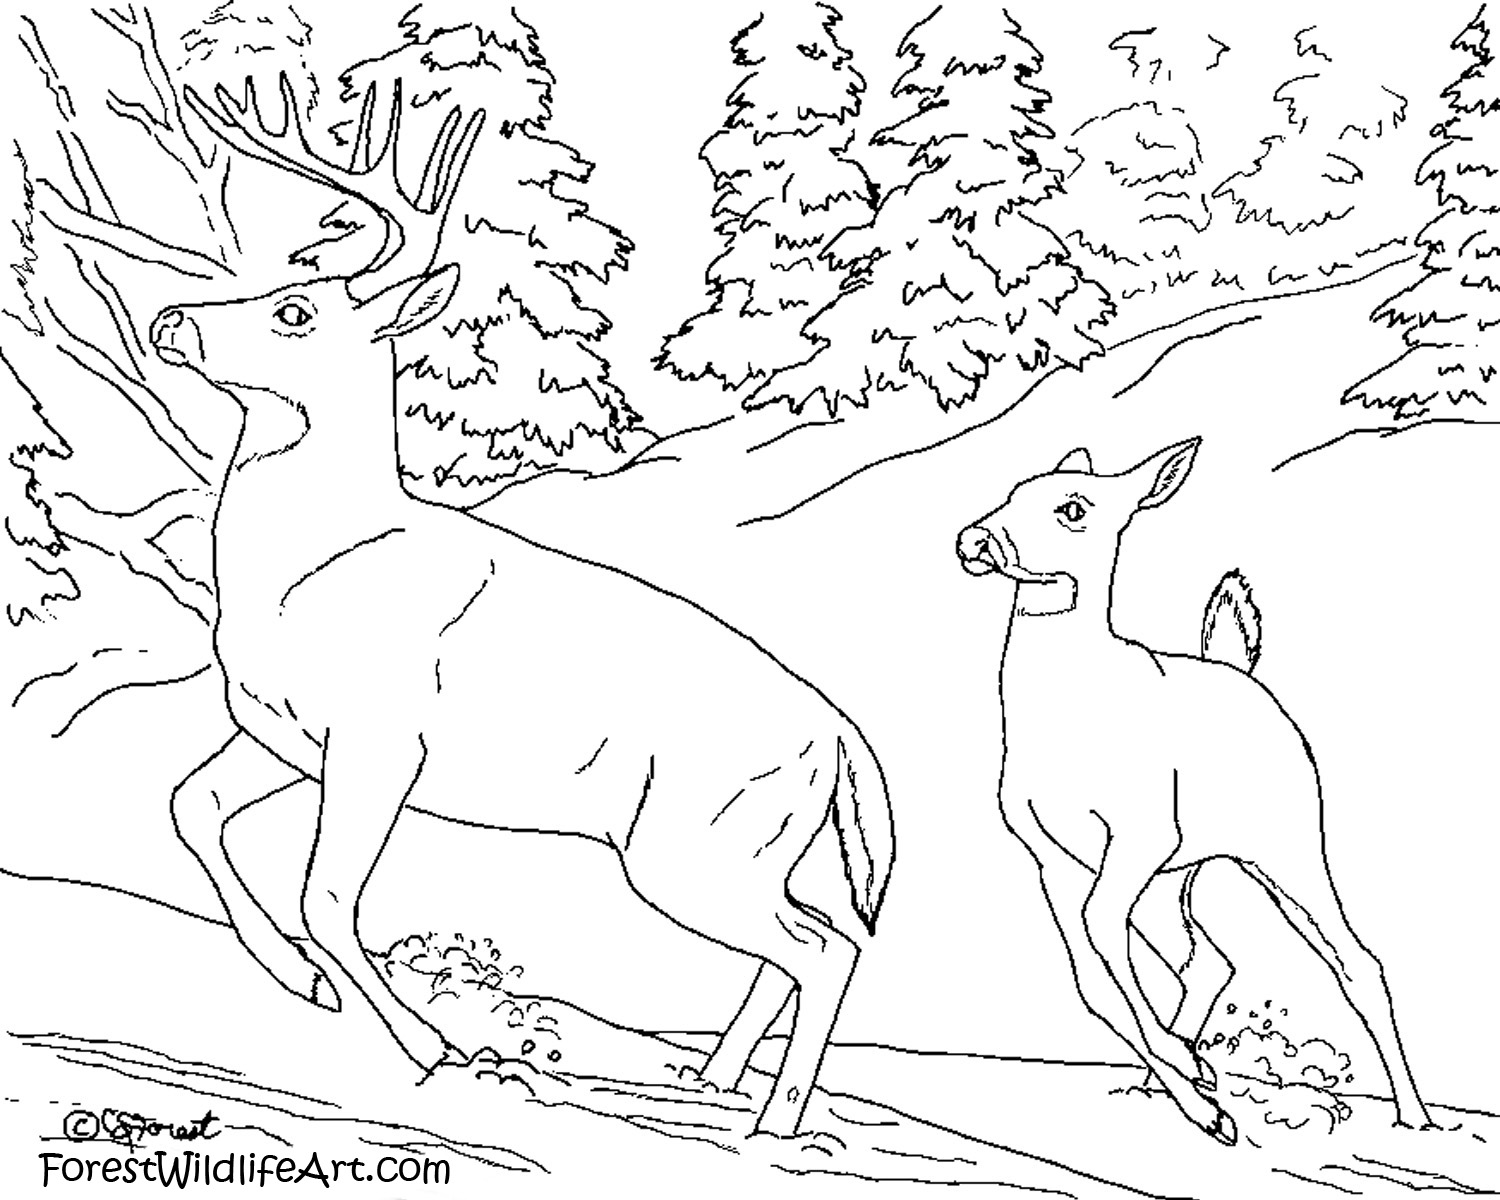 Crista Forest's Animals & Art: Learn Wildlife For Kids